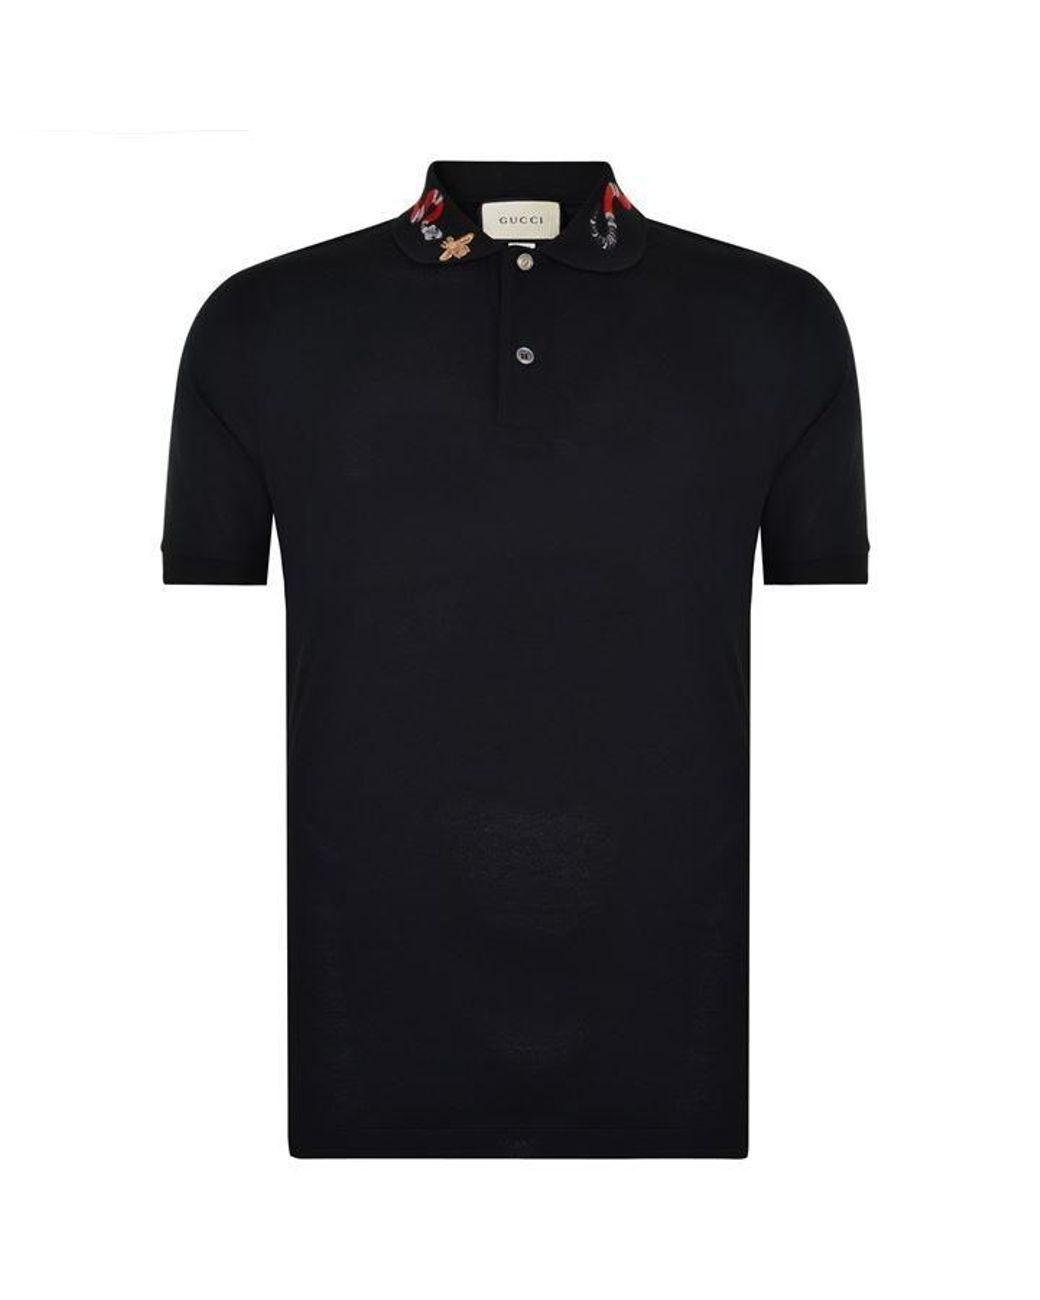 0f25461cb Gucci Snake Embroidered Polo Shirt in Black for Men - Lyst